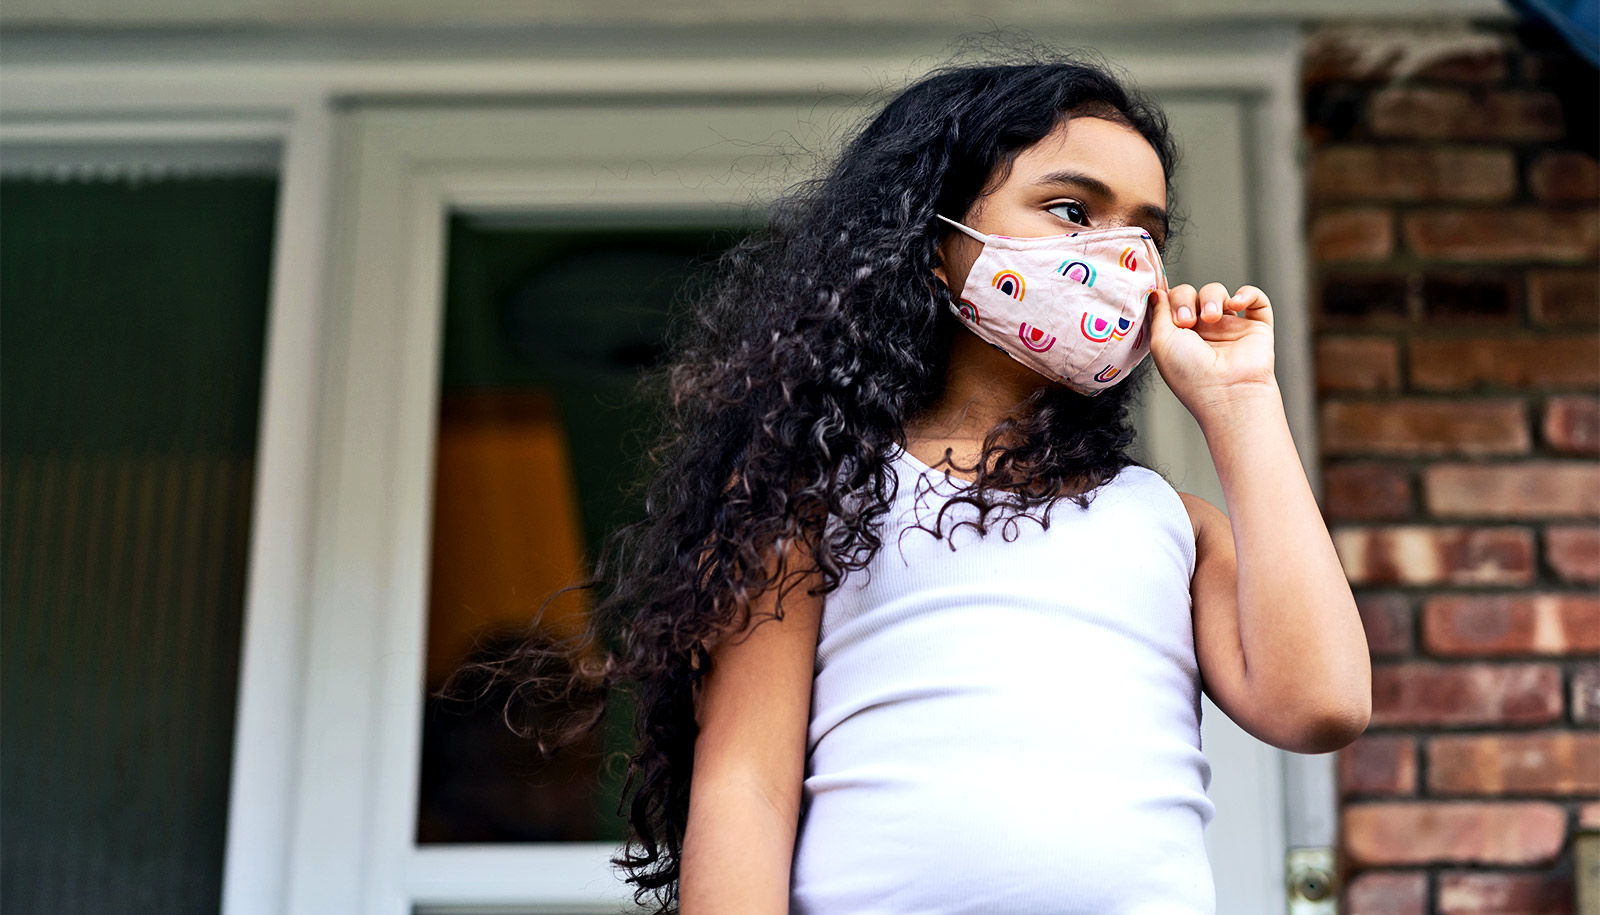 Air pollution puts kids at higher risk of disease in adulthood